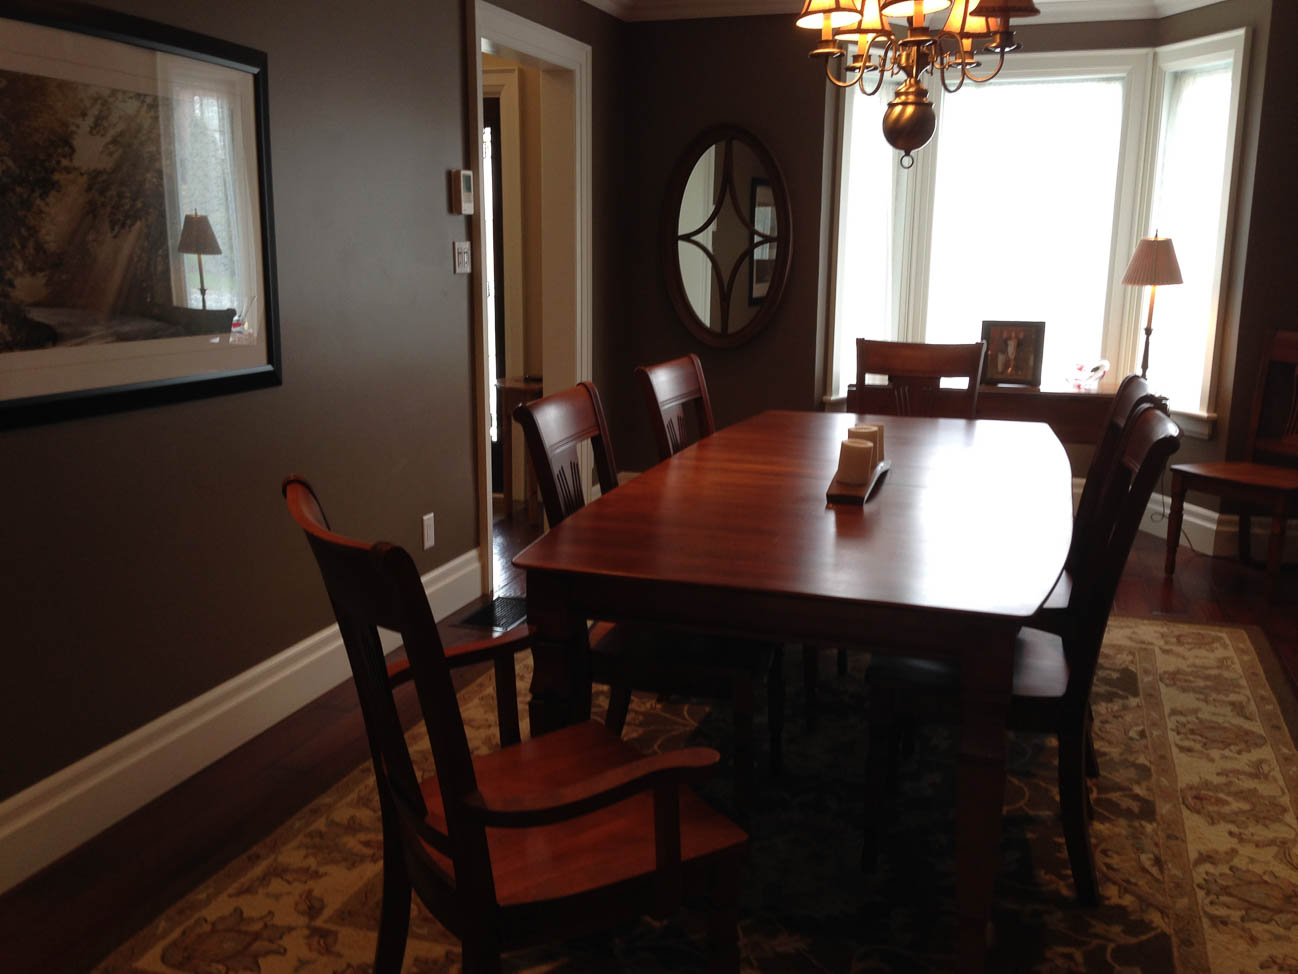 Amateur photo of dining room